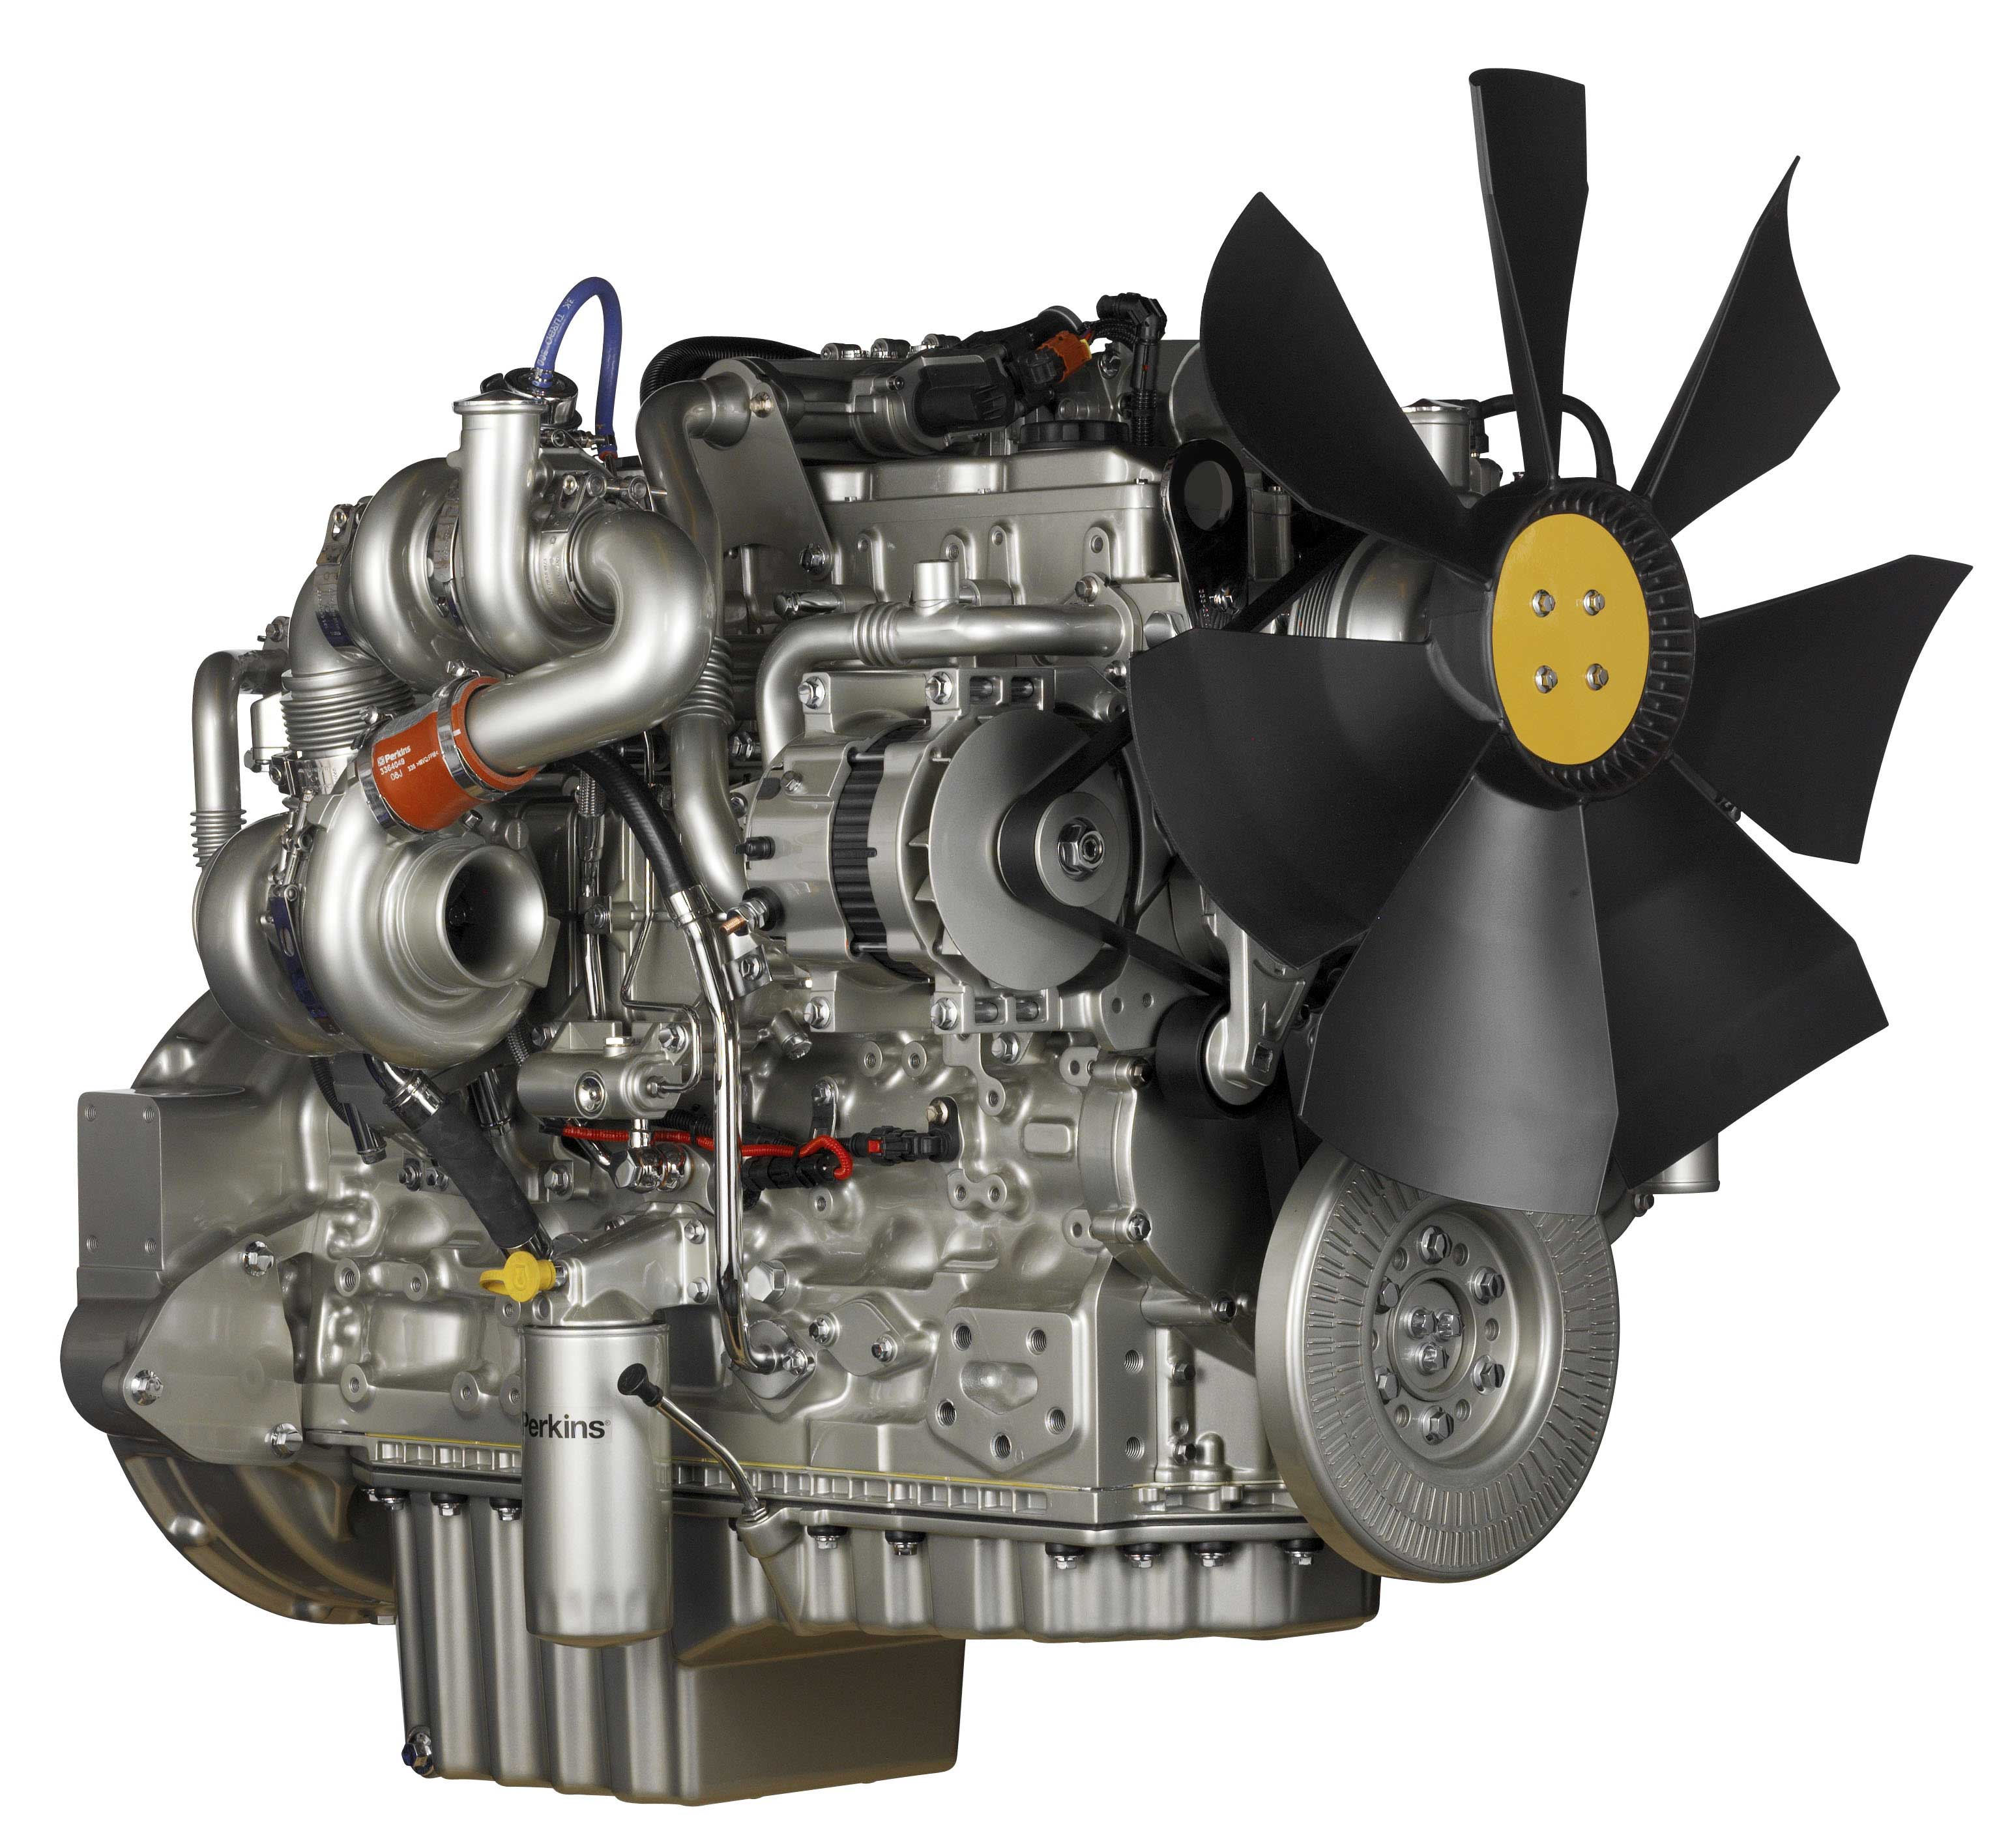 perkins engine As a master perkins service dealer, diesel parts direct offers a large inventory of genuine perkins 1100 series engines and more.